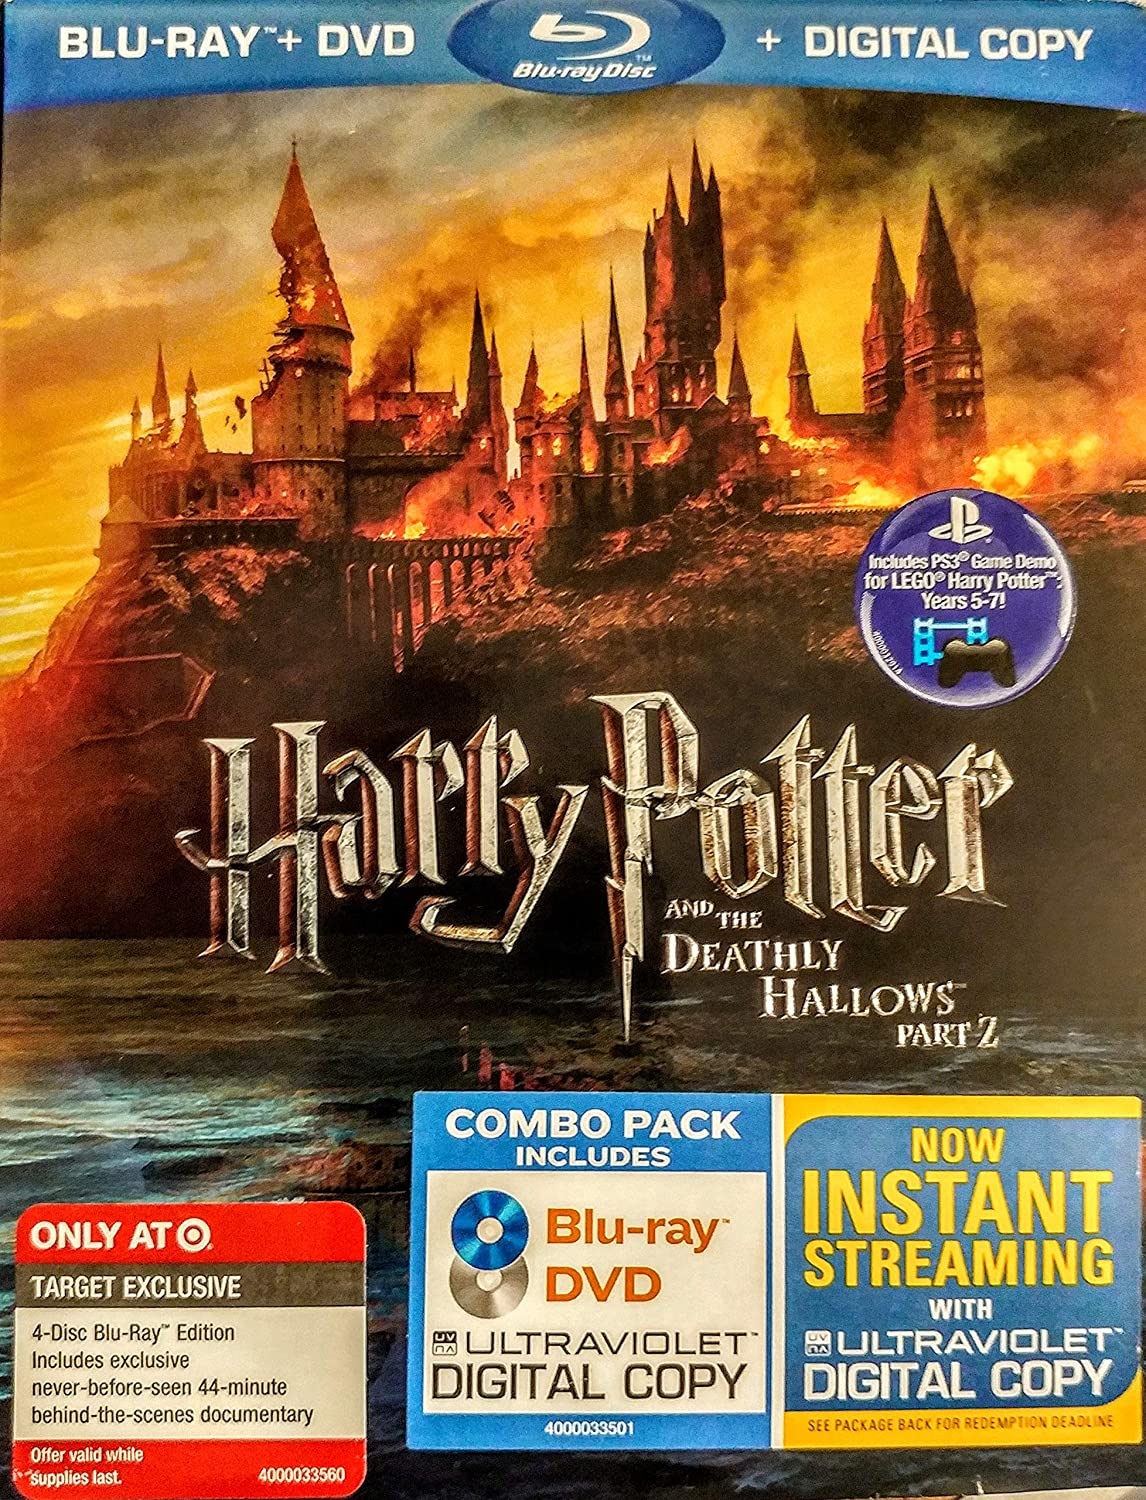 Harry Potter and the Deathly Hallows, Part 2 4-Disc Blu-ray/DVD Combo UltraViolet Digital Copy Edition with Bonus Disc by Warner Home Video by David Yates: Amazon.es: Cine y Series TV